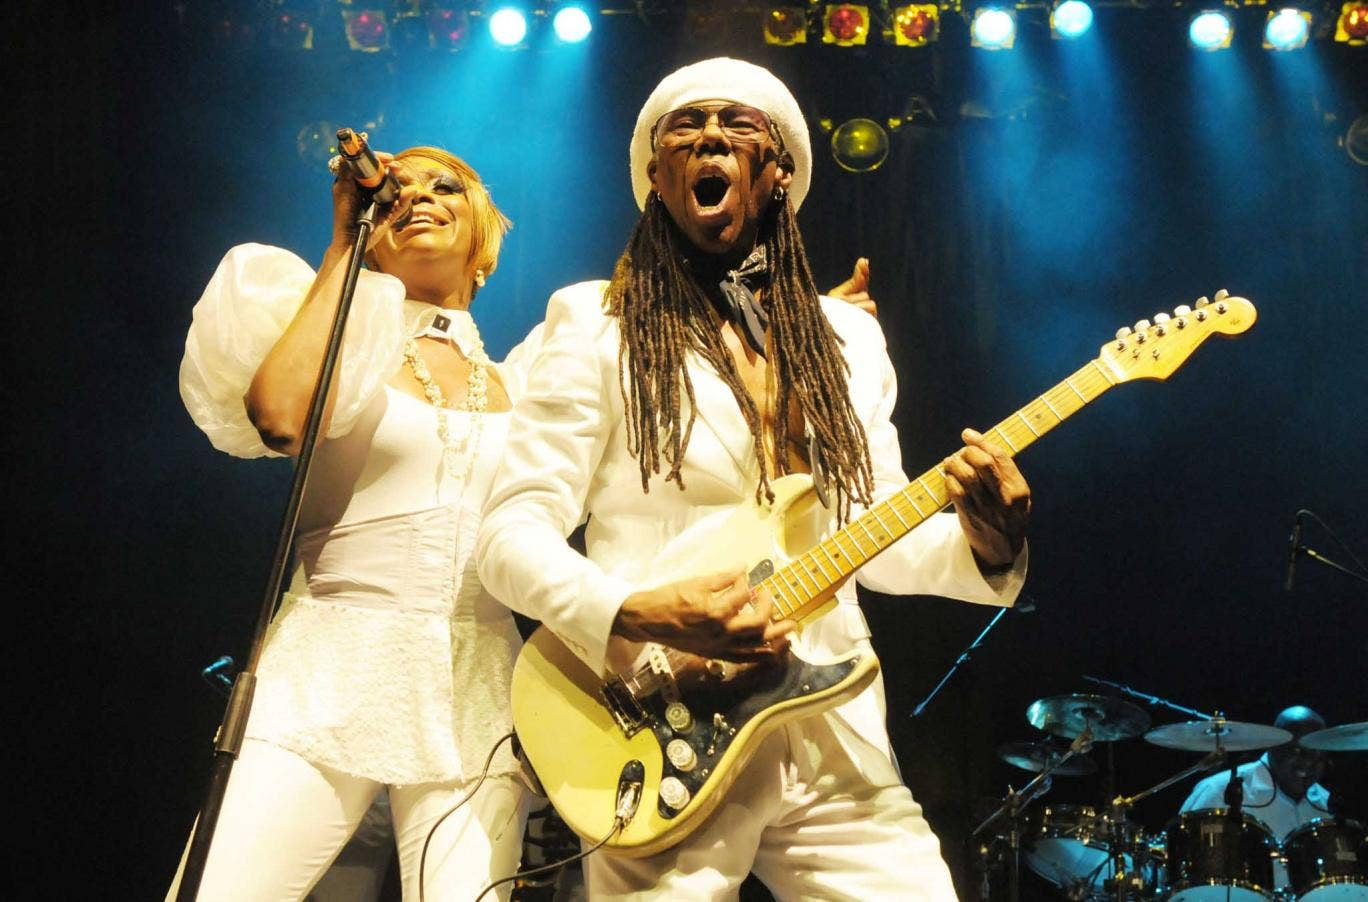 Nile Rodgers performing on stage at the Indigo2, London